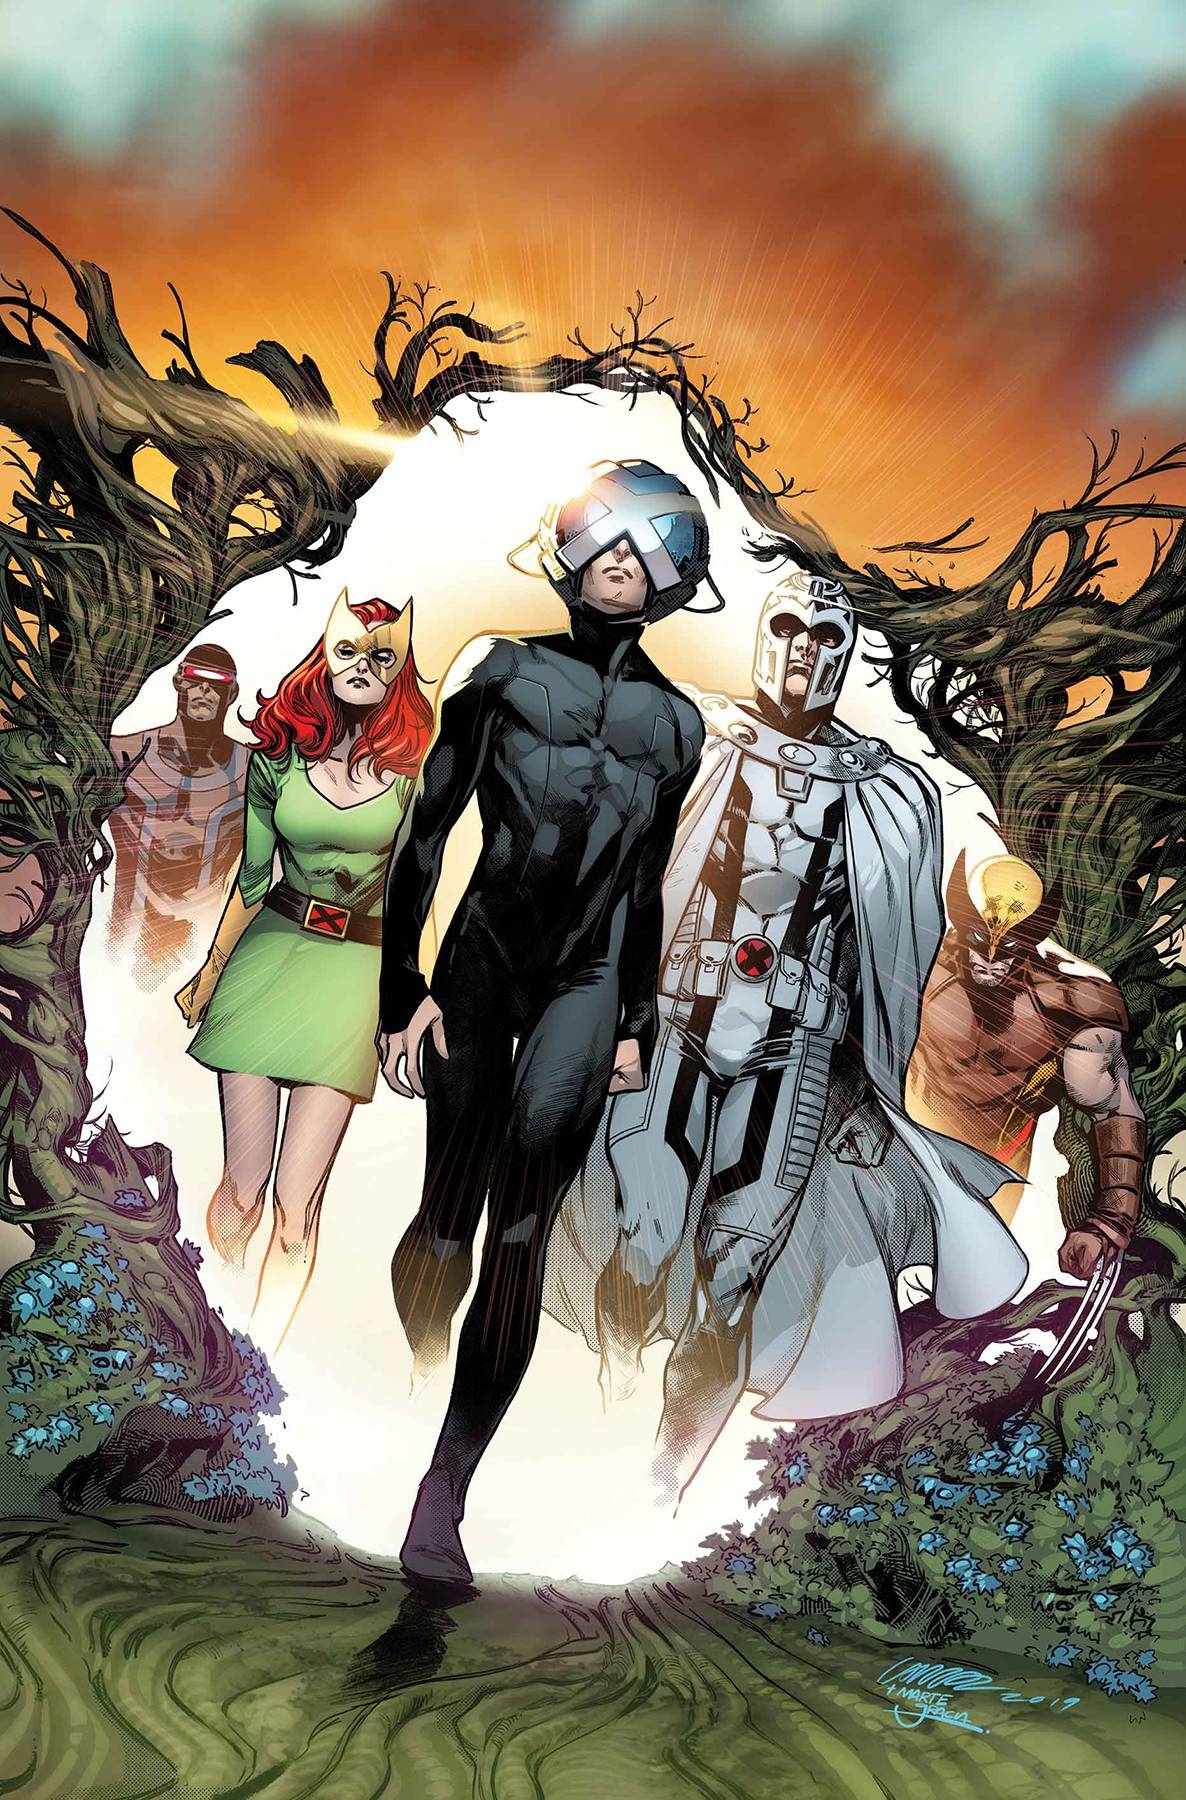 HOUSE OF X BY LARRAZ POSTER.jpg